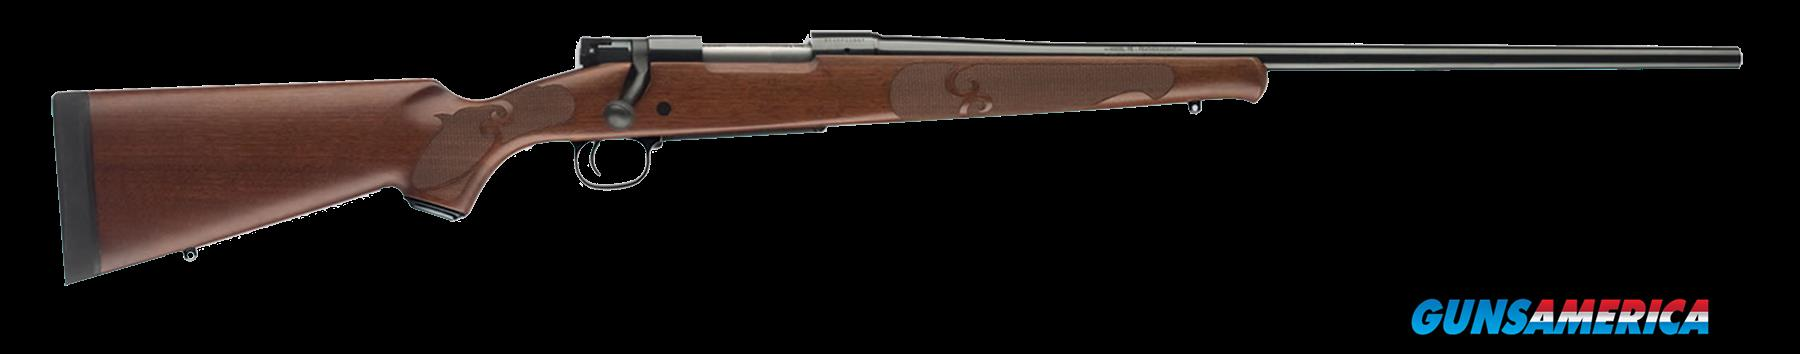 "Winchester Guns 535200229 70 Featherweight Bolt 264 Win Mag 24"" 3+1 Grade I Walnut Stk Blued  Guns > Rifles > Winchester Rifles - Modern Bolt/Auto/Single > Model 70 > Post-64"